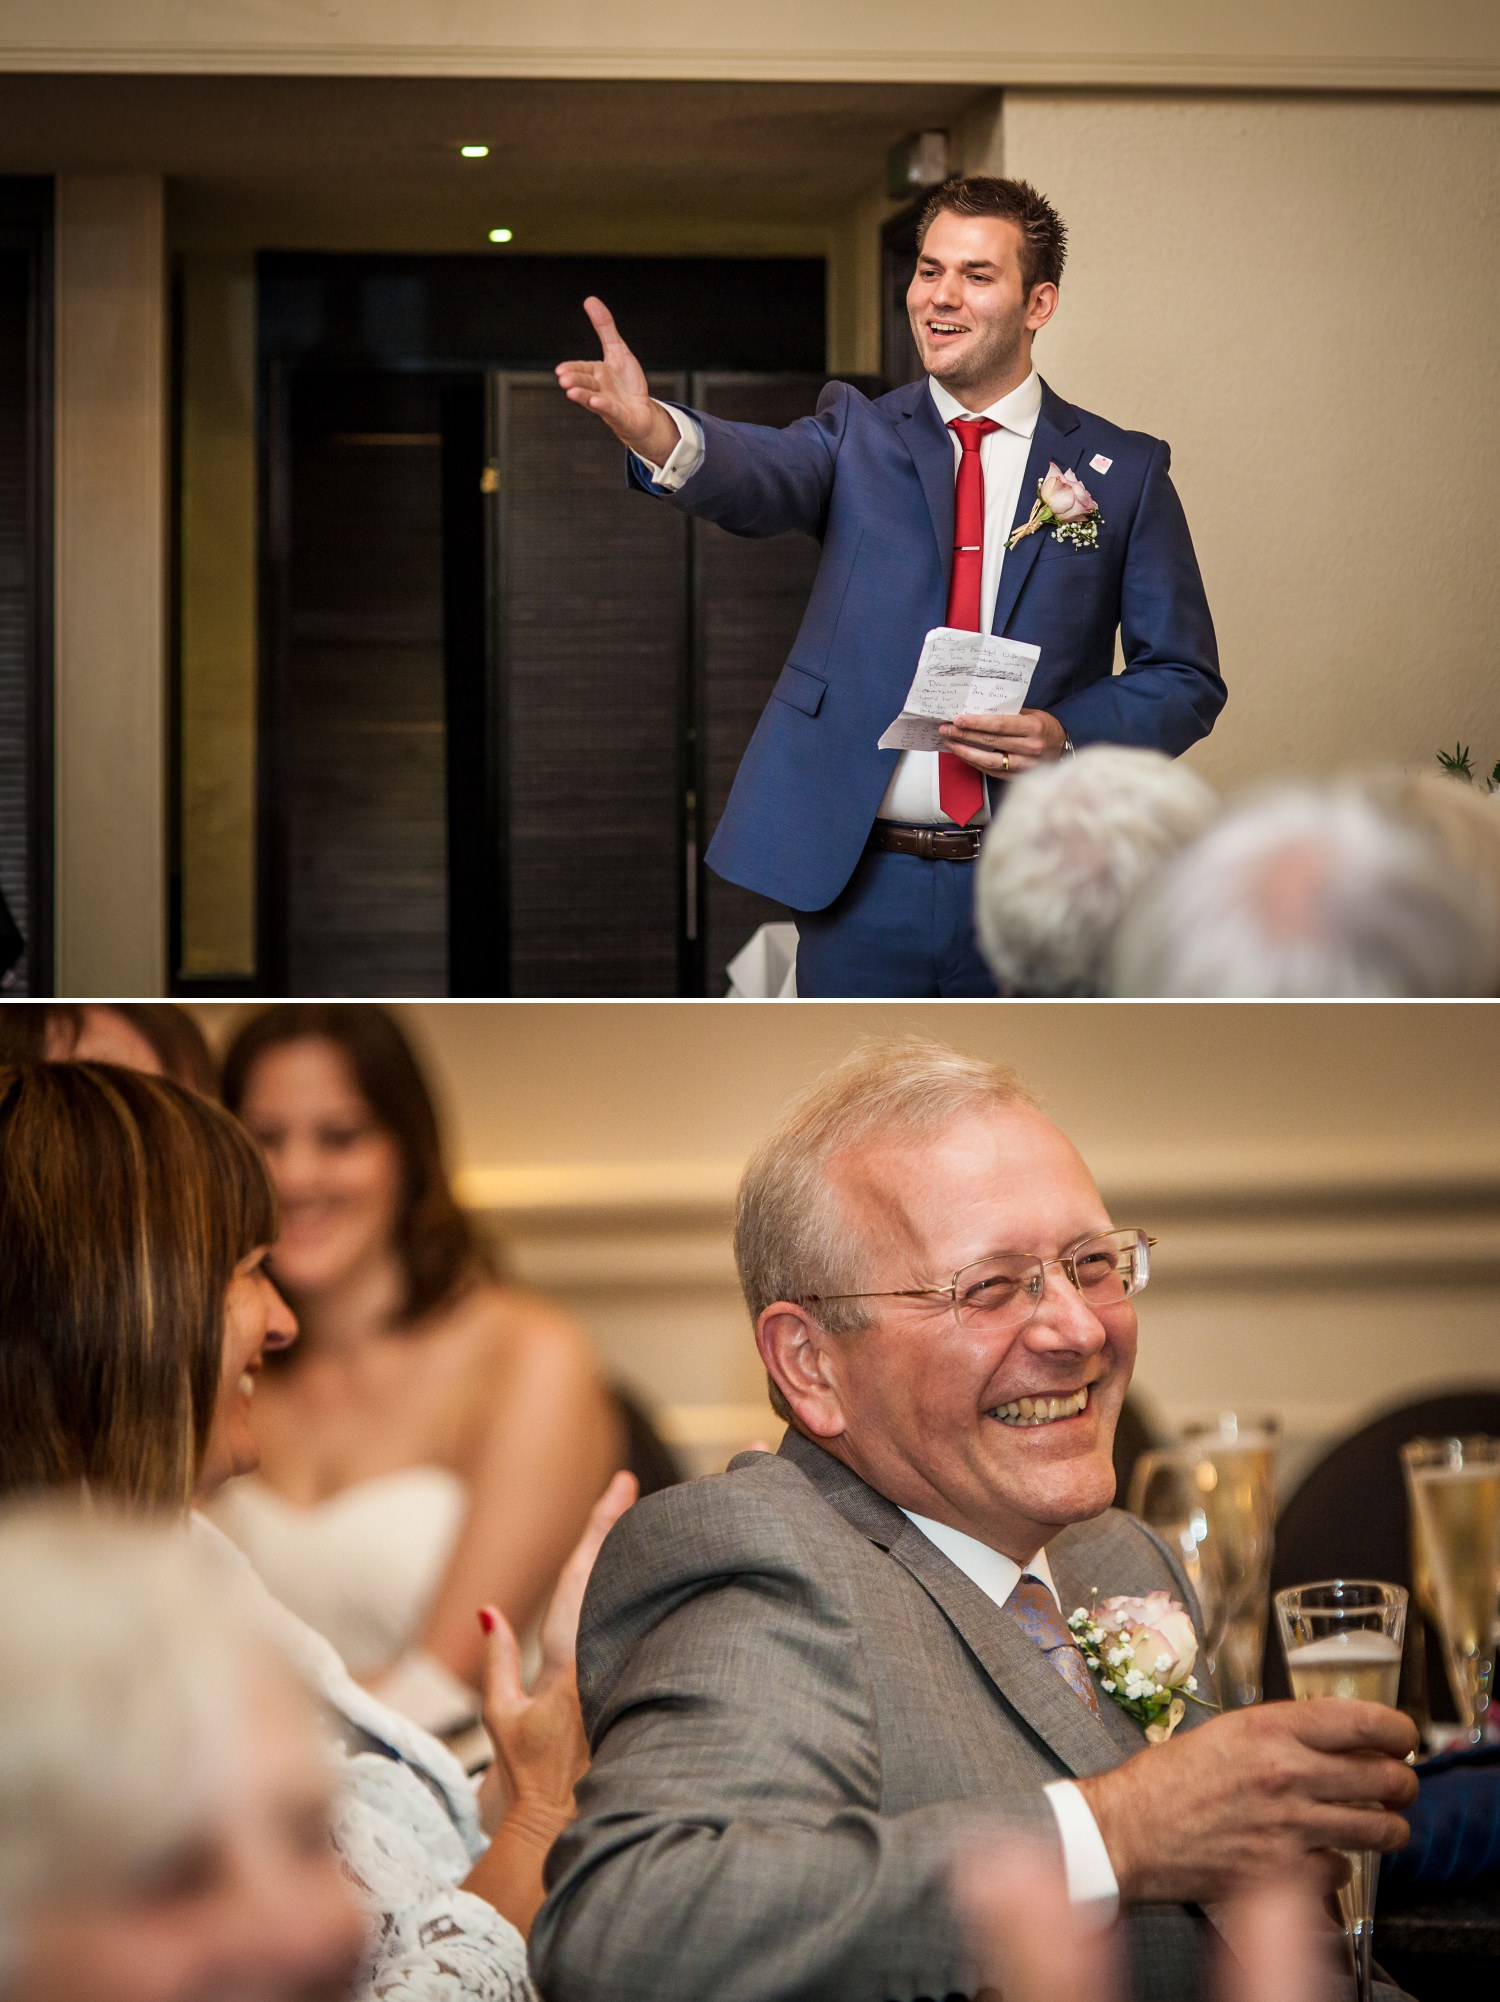 Wirral wedding photographer, photographing guest speeches